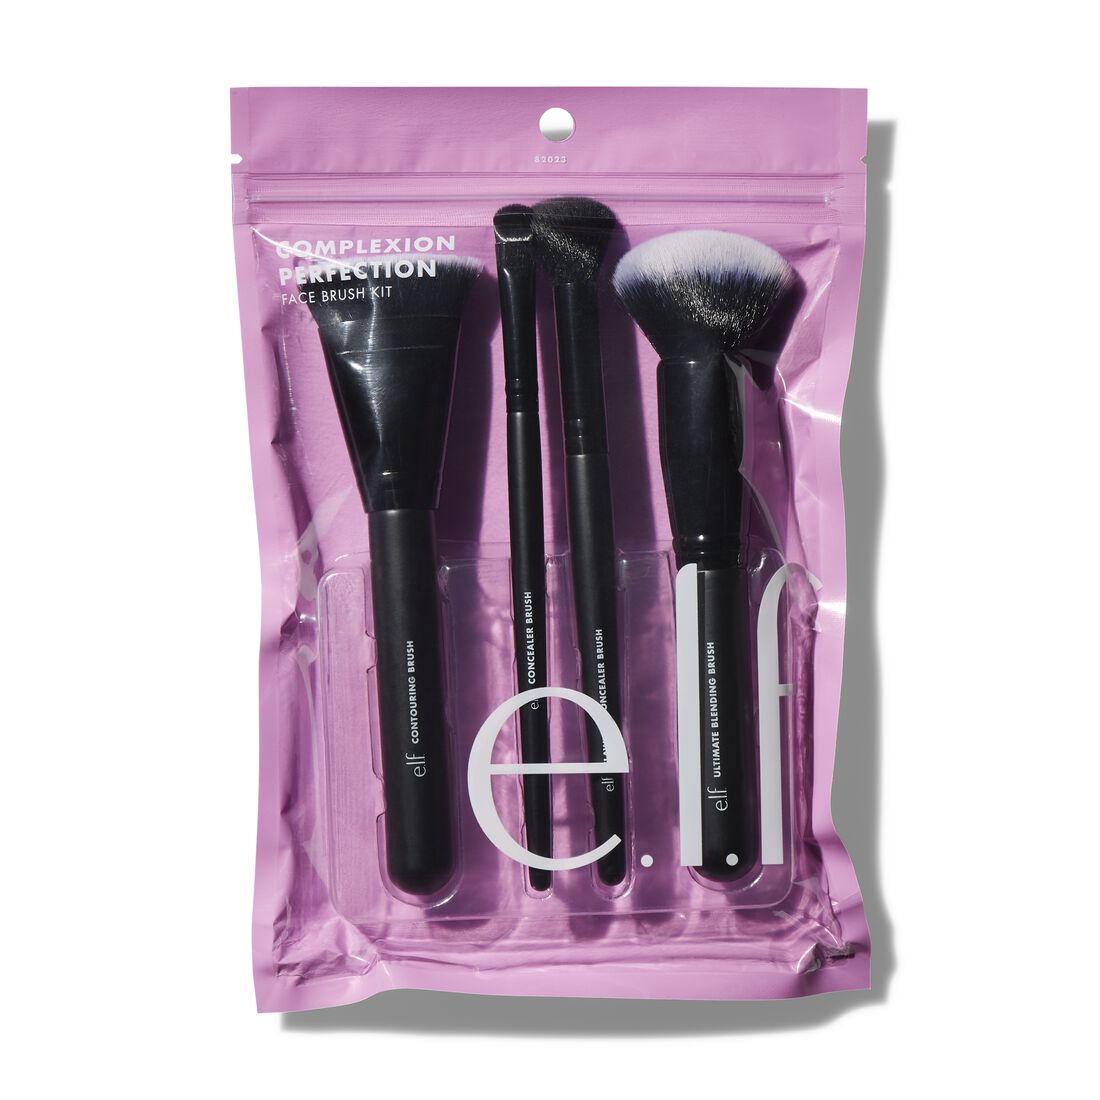 ELF Cosmetics - Complexion Perfection Brush Kit